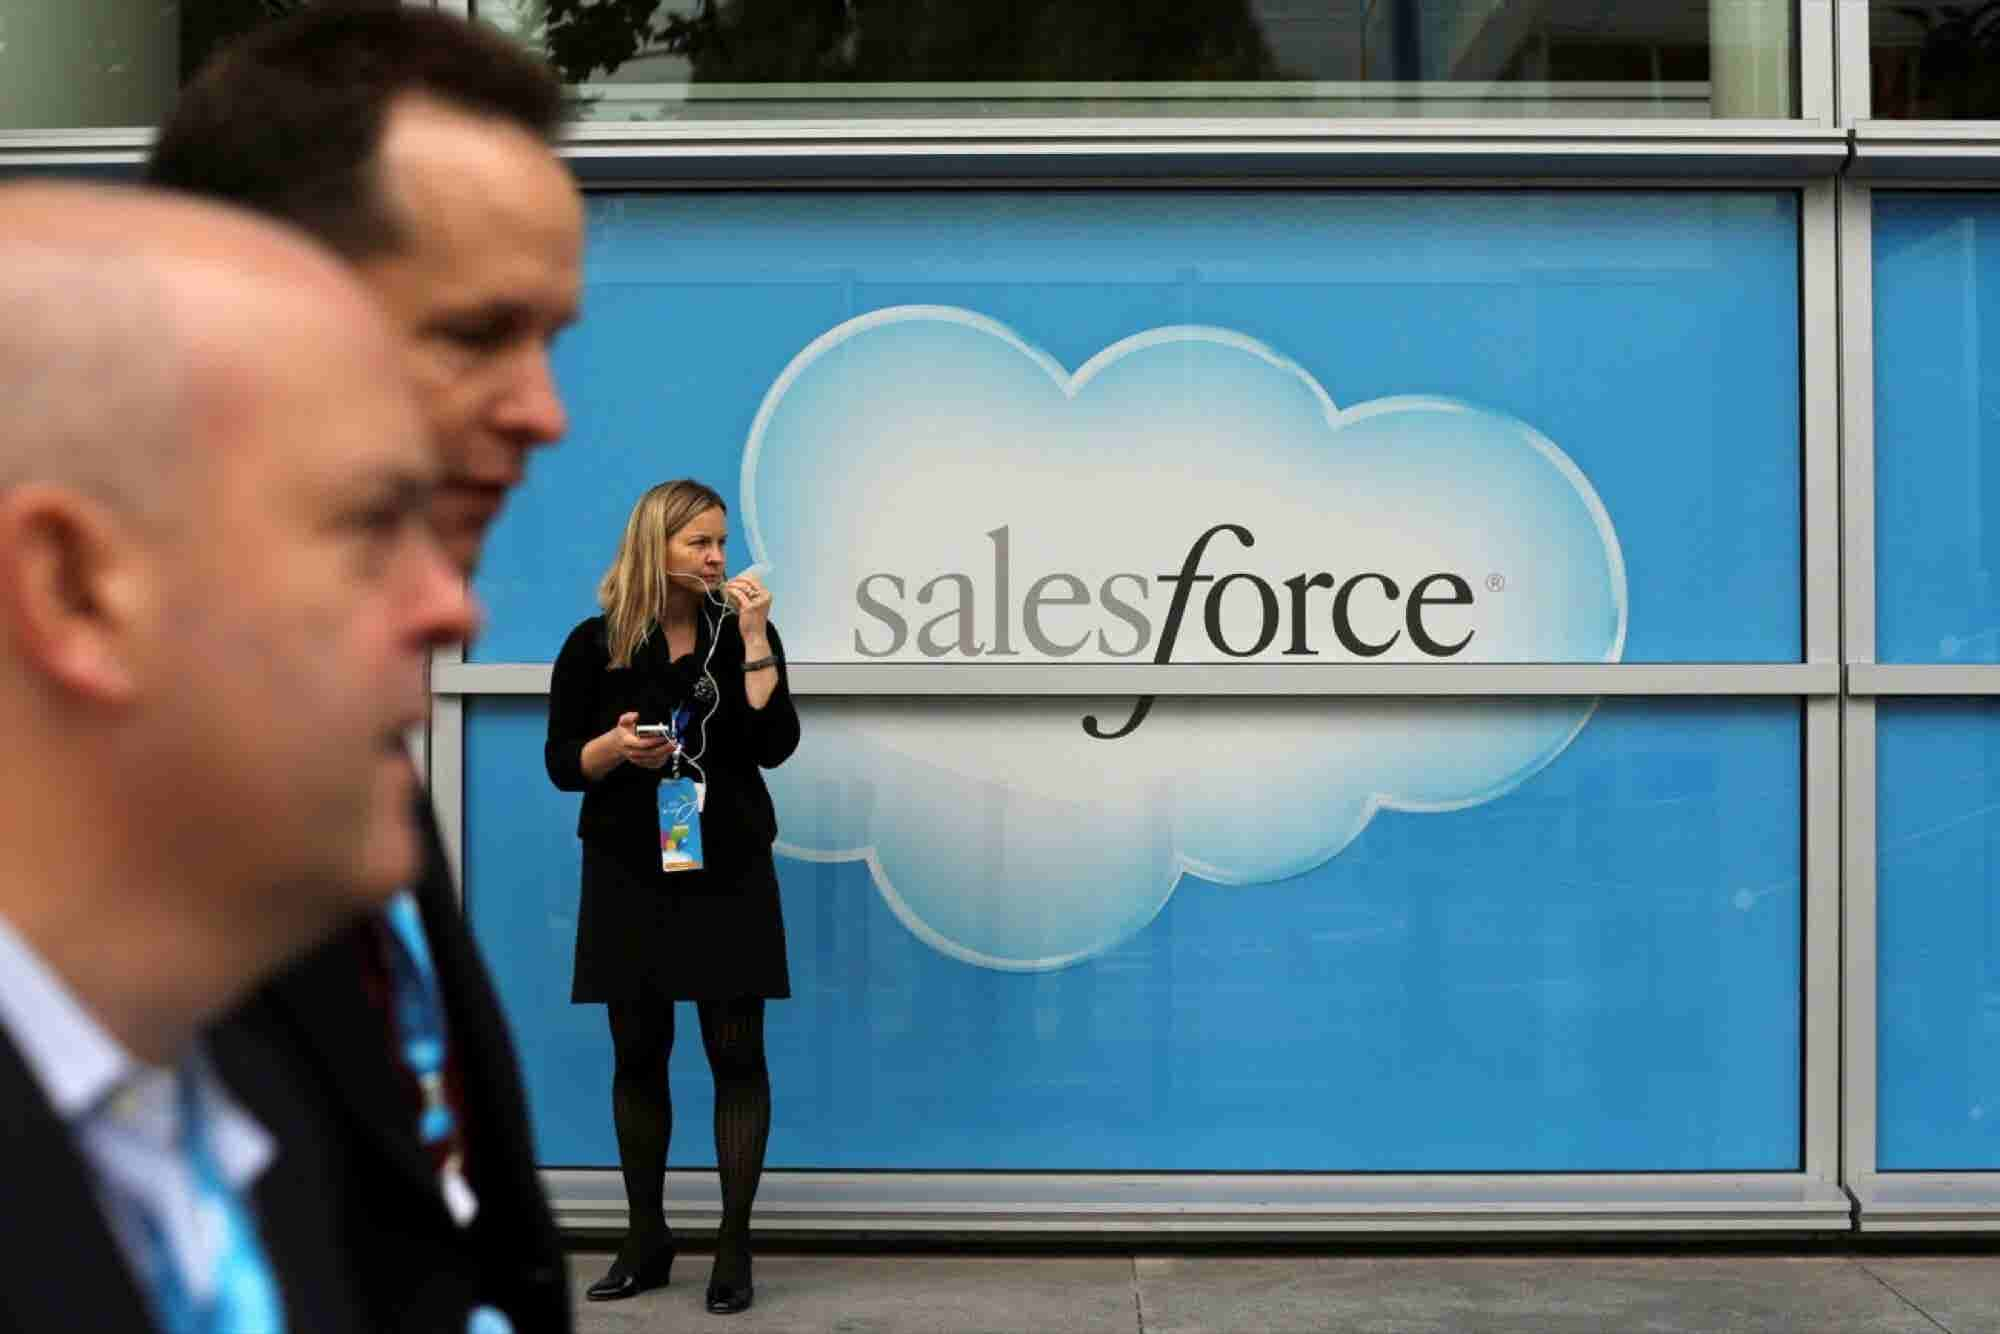 Salesforce to Buy Document-Editing Startup for Millions